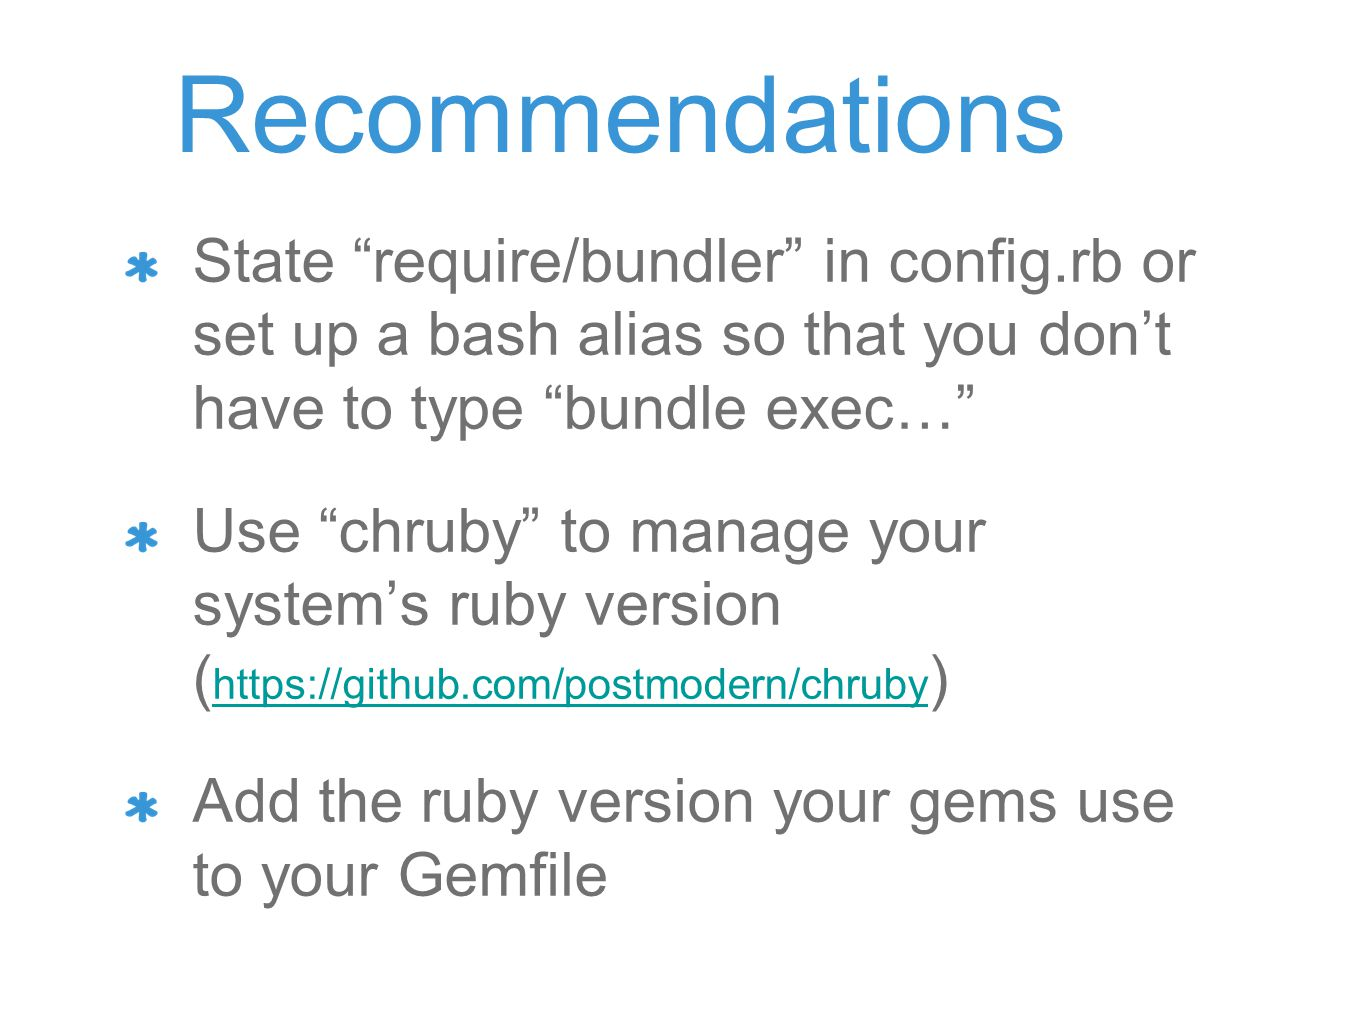 Recommendations State require/bundler in config.rb or set up a bash alias so that you don't have to type bundle exec… Use chruby to manage your system's ruby version ( https://github.com/postmodern/chruby ) https://github.com/postmodern/chruby Add the ruby version your gems use to your Gemfile